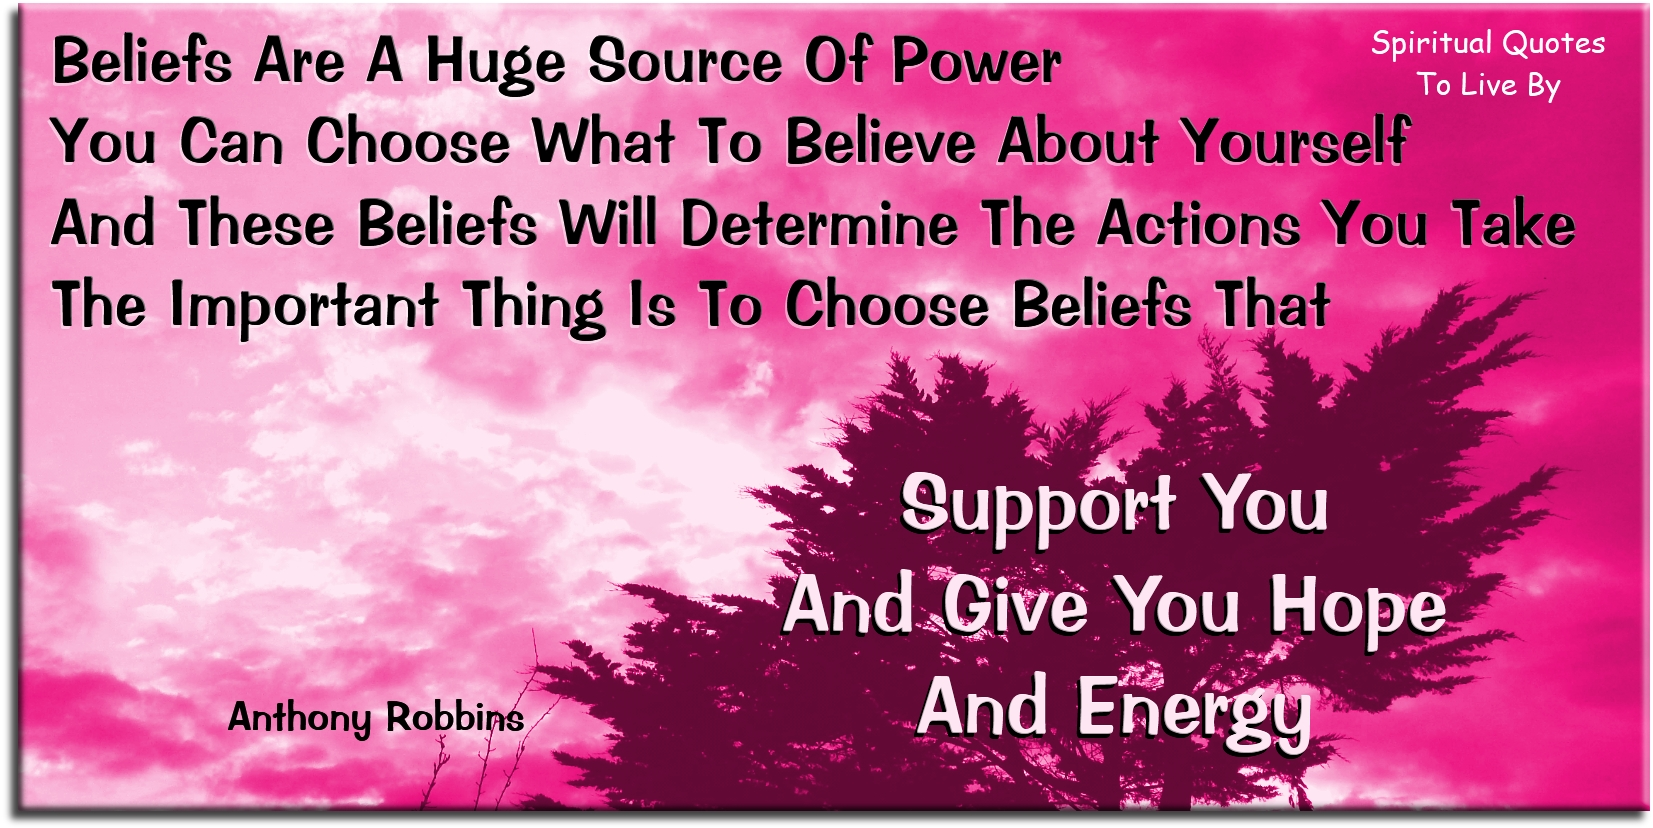 Anthony Robbins quote: Beliefs are a huge source of power. You can choose what to believe about yourself, and these beliefs will determine the actions you take. Spiritual Quotes To Live By